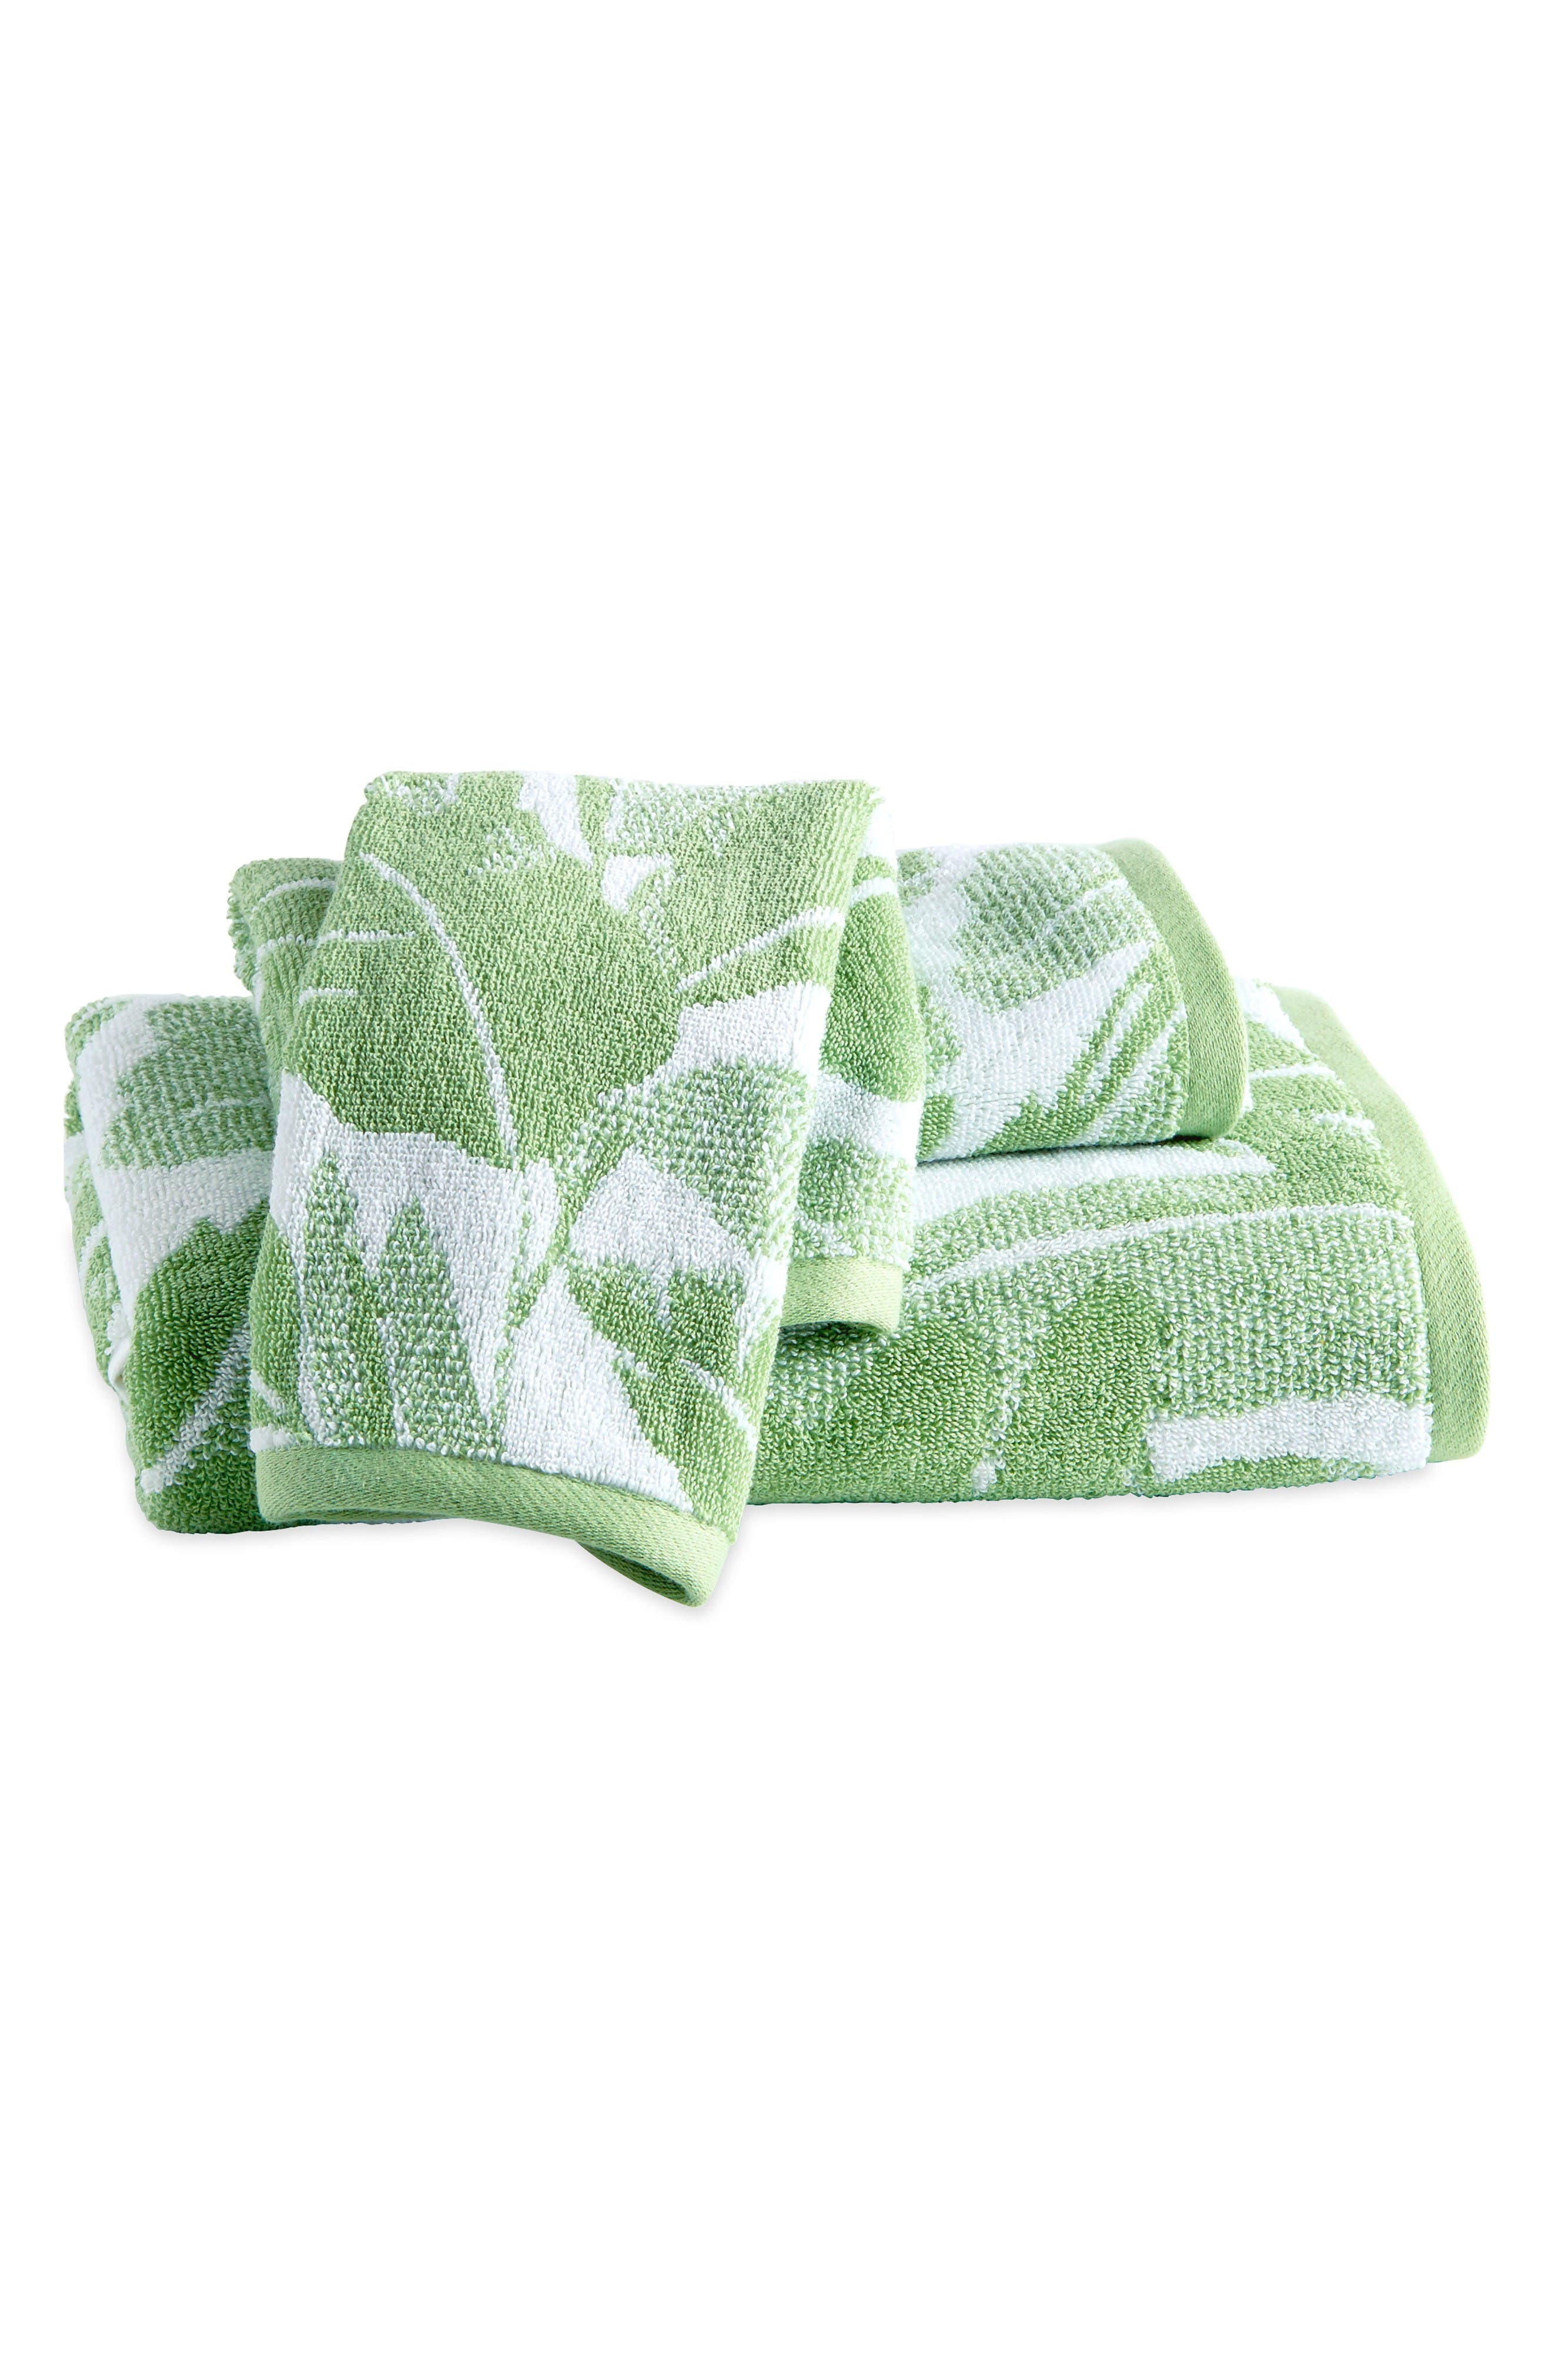 Miami Leaf Bath Towel, Hand Towel and Finger Towel Set,                         Main,                         color, Green